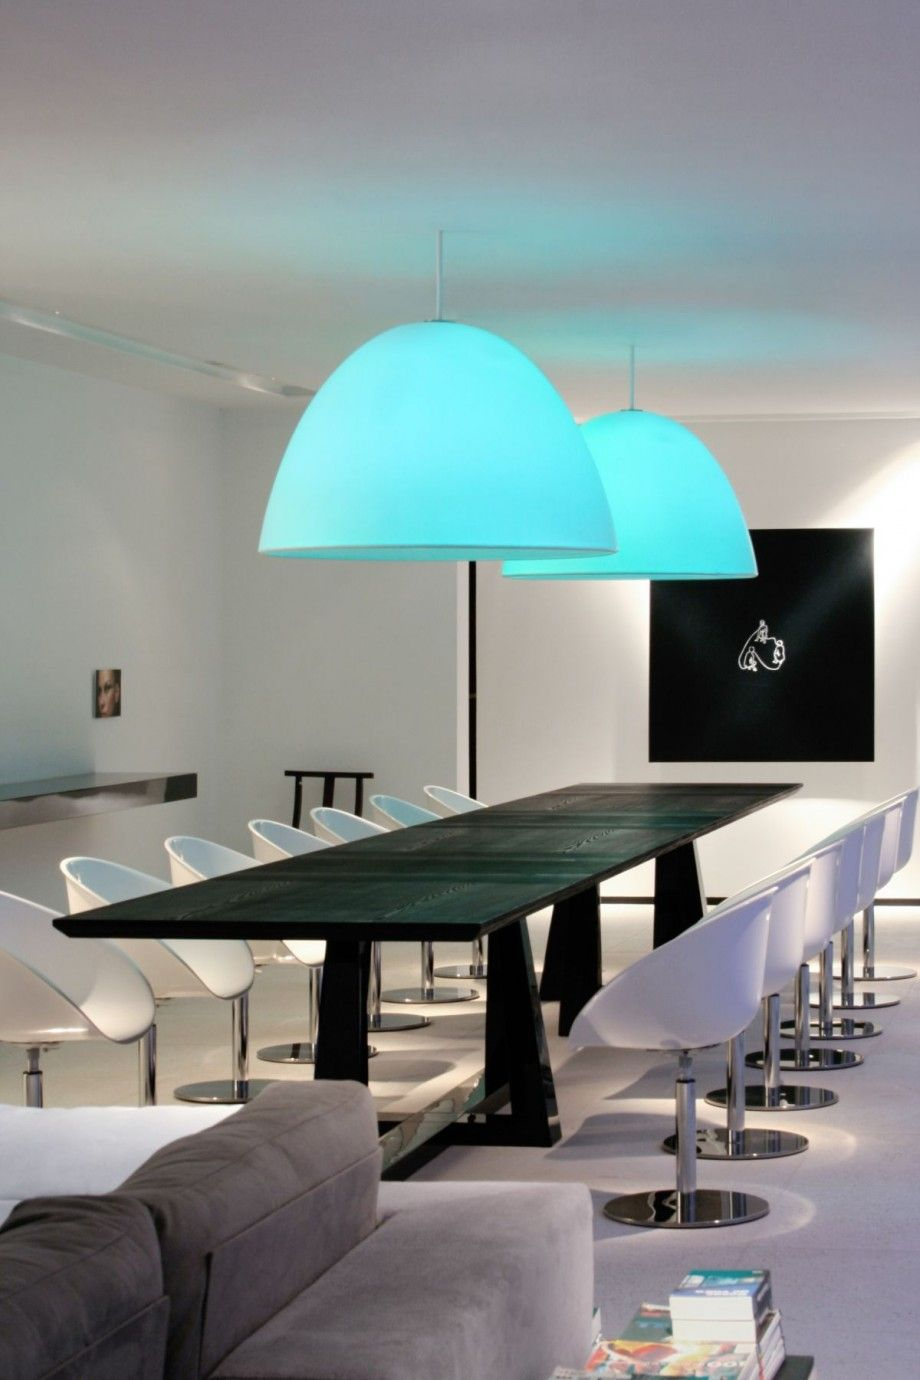 Futuristic Dining Room Design By Extraordinary Blue Shades From Half ...